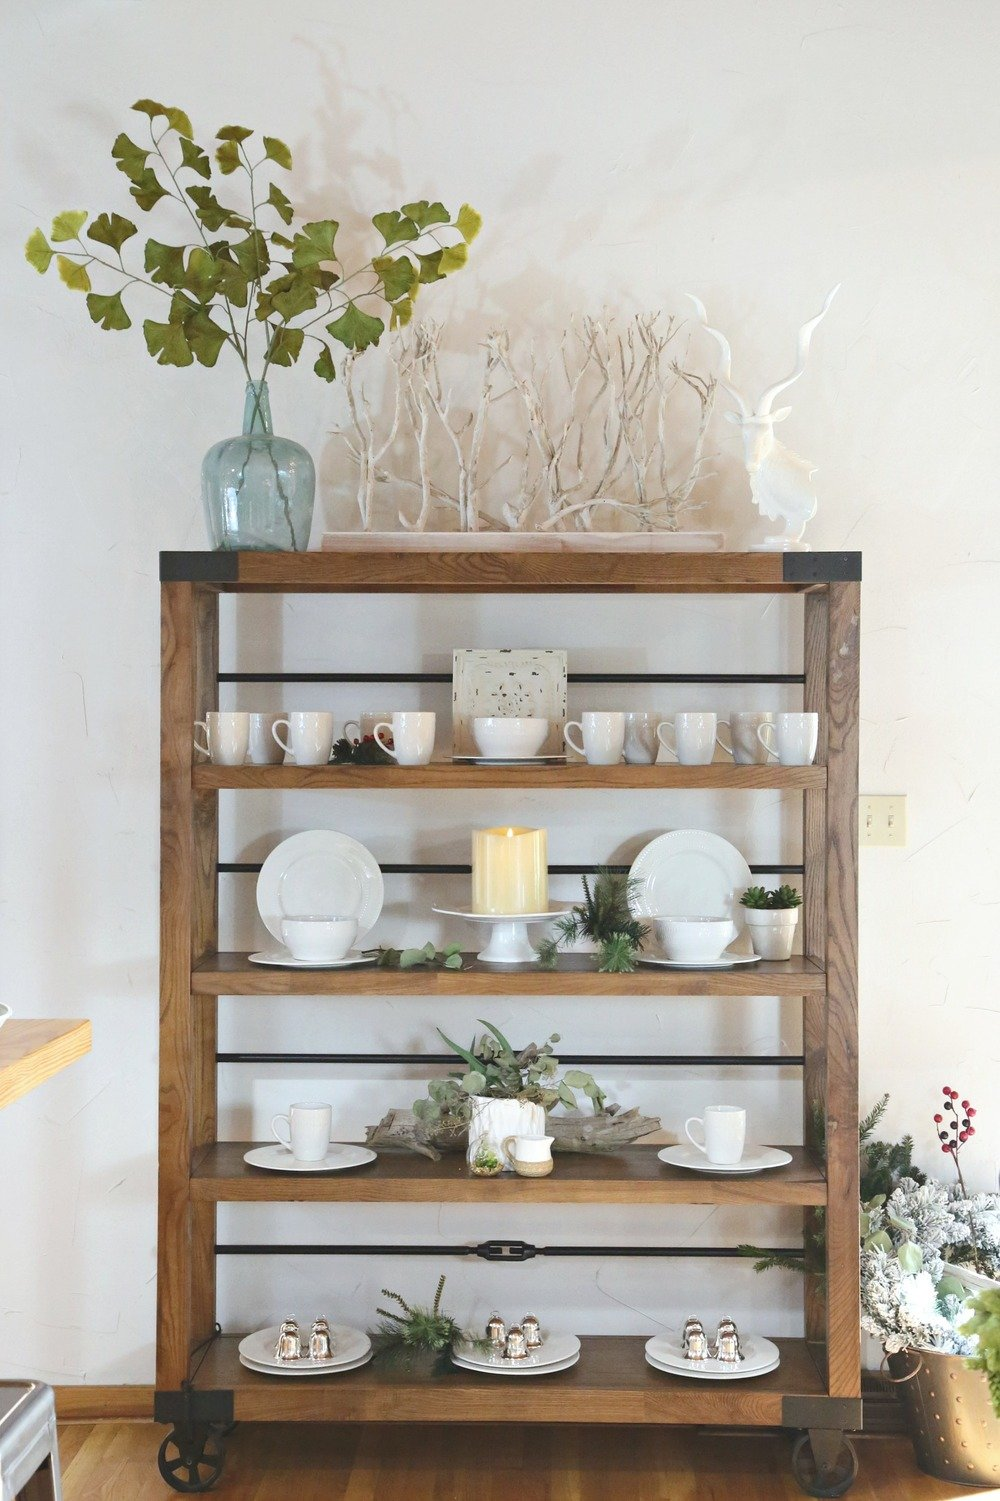 Industrial shelving on wheels decorated.